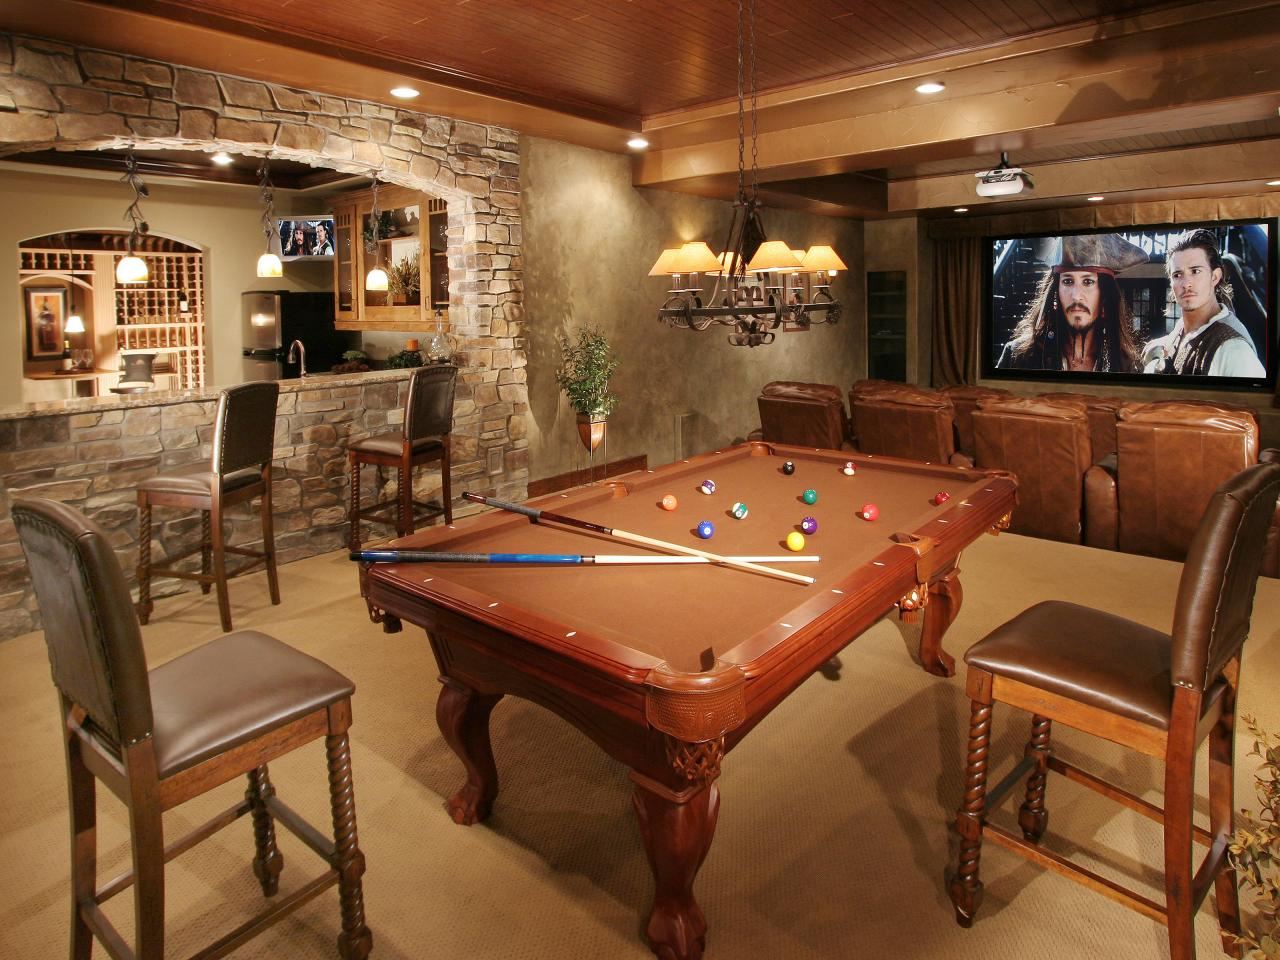 decoration salle de jeu billard. Black Bedroom Furniture Sets. Home Design Ideas